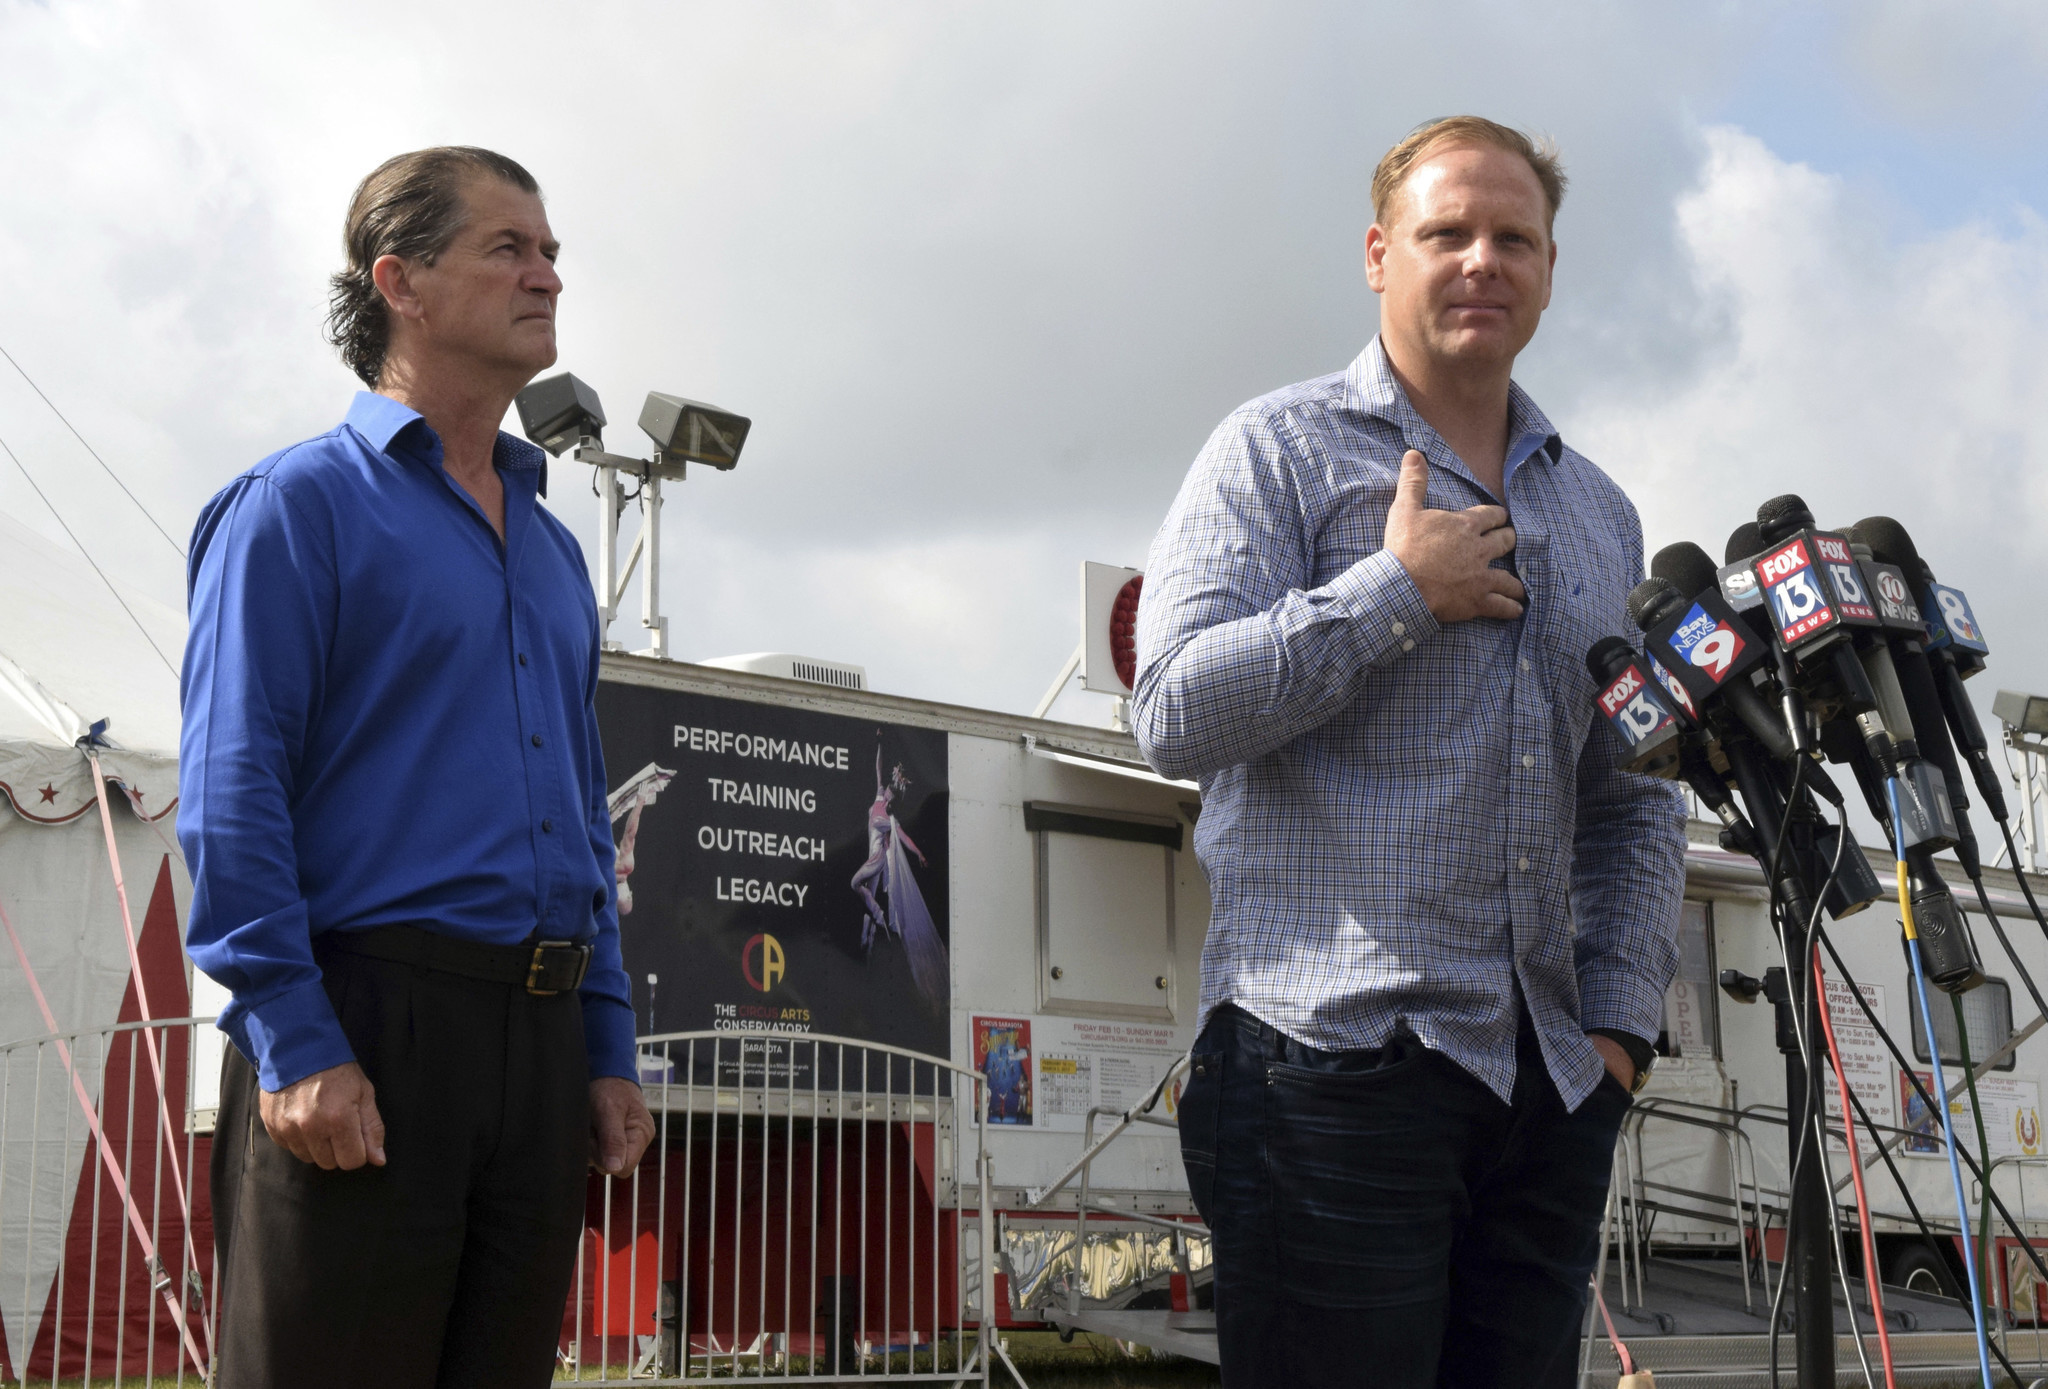 Nik Wallenda says all will recover from Florida circus accident ...